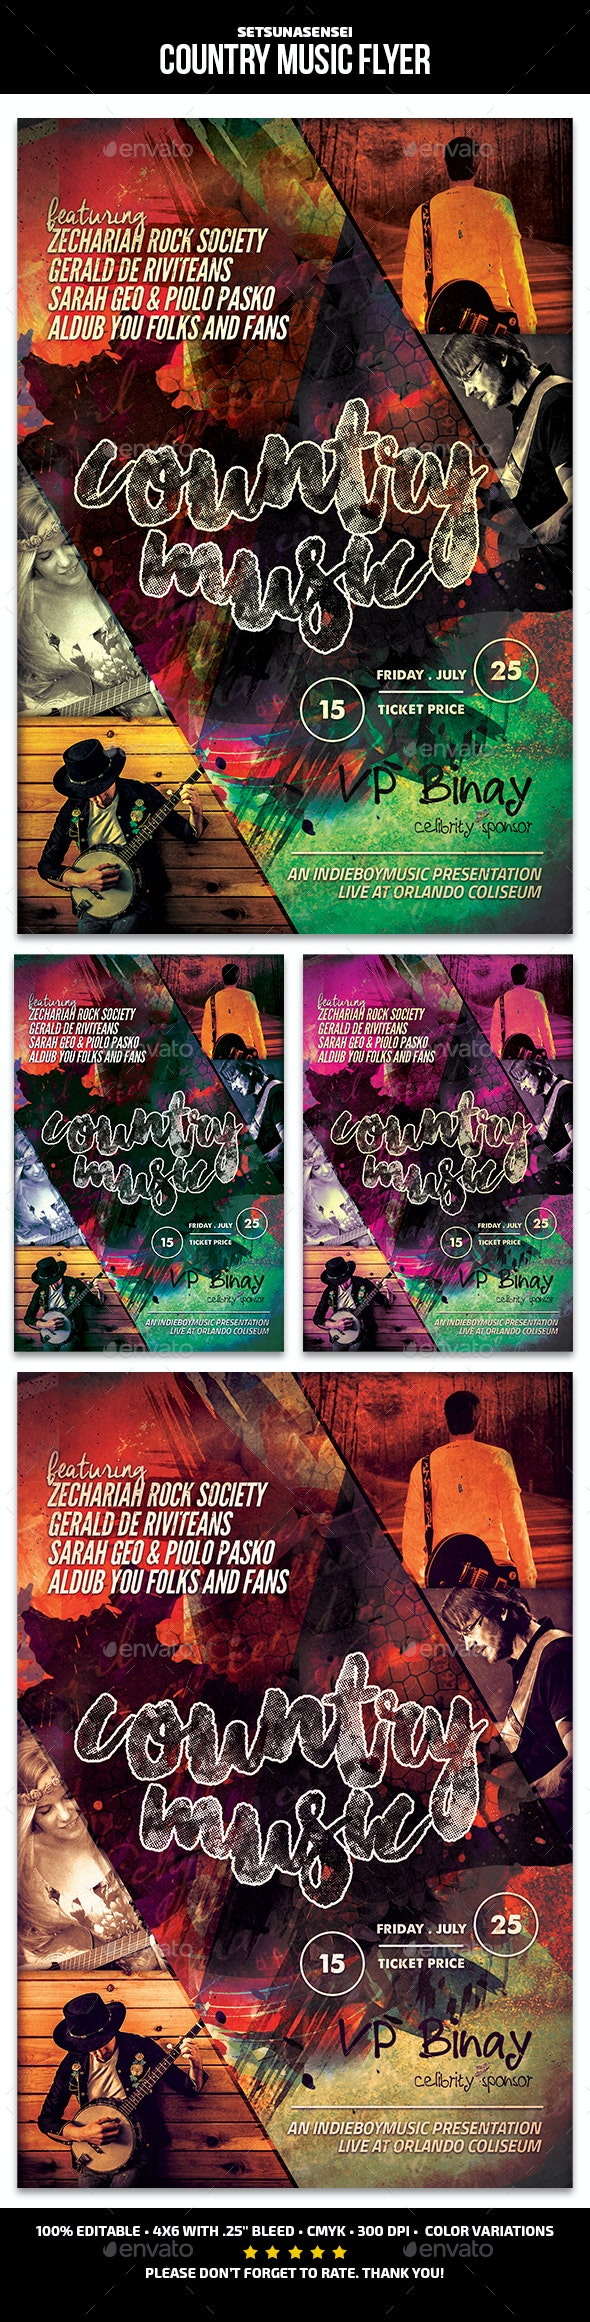 Country Music Flyer - Concerts Events